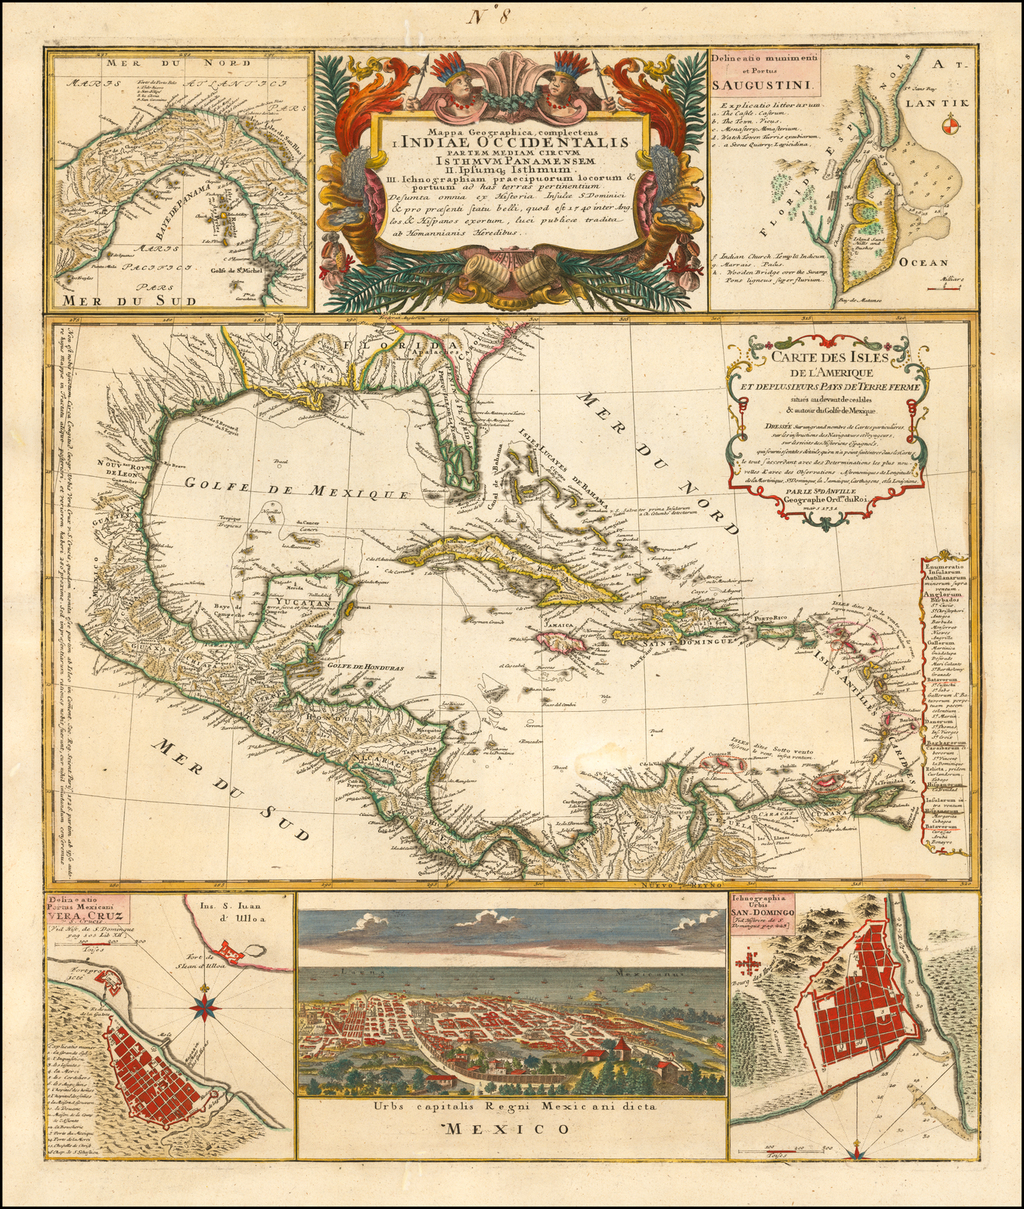 Mappa Geographica Complectens I. Indiae Occidentalis Partem Mediam Circum Isthmum Panamensem [Large Inset of St. Augstine, Florida] By Homann Heirs